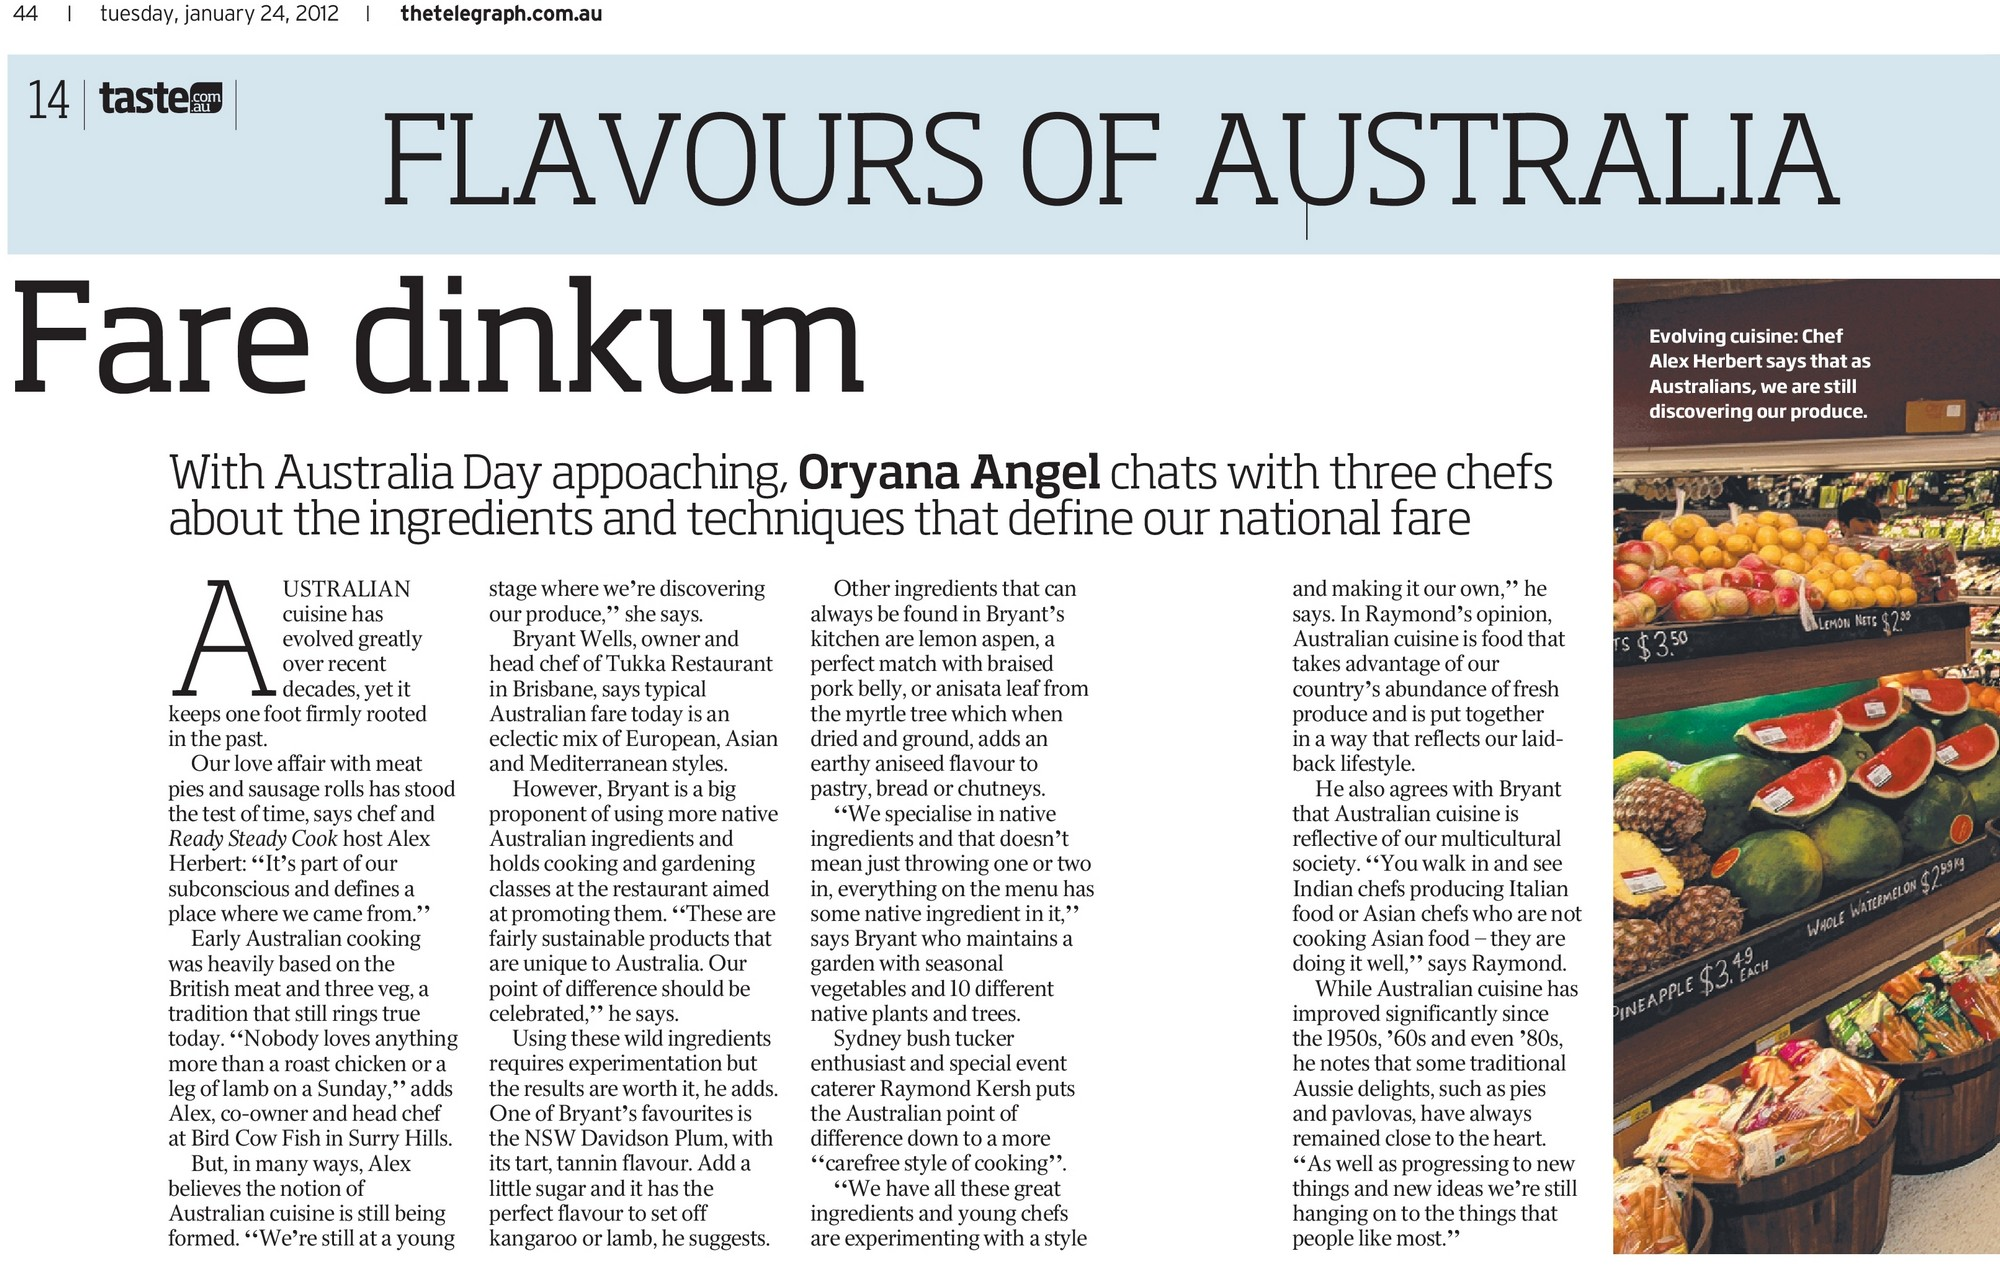 With Australia Day appoaching, Oryana Angel  about the ingredients and techniques that define our national fare